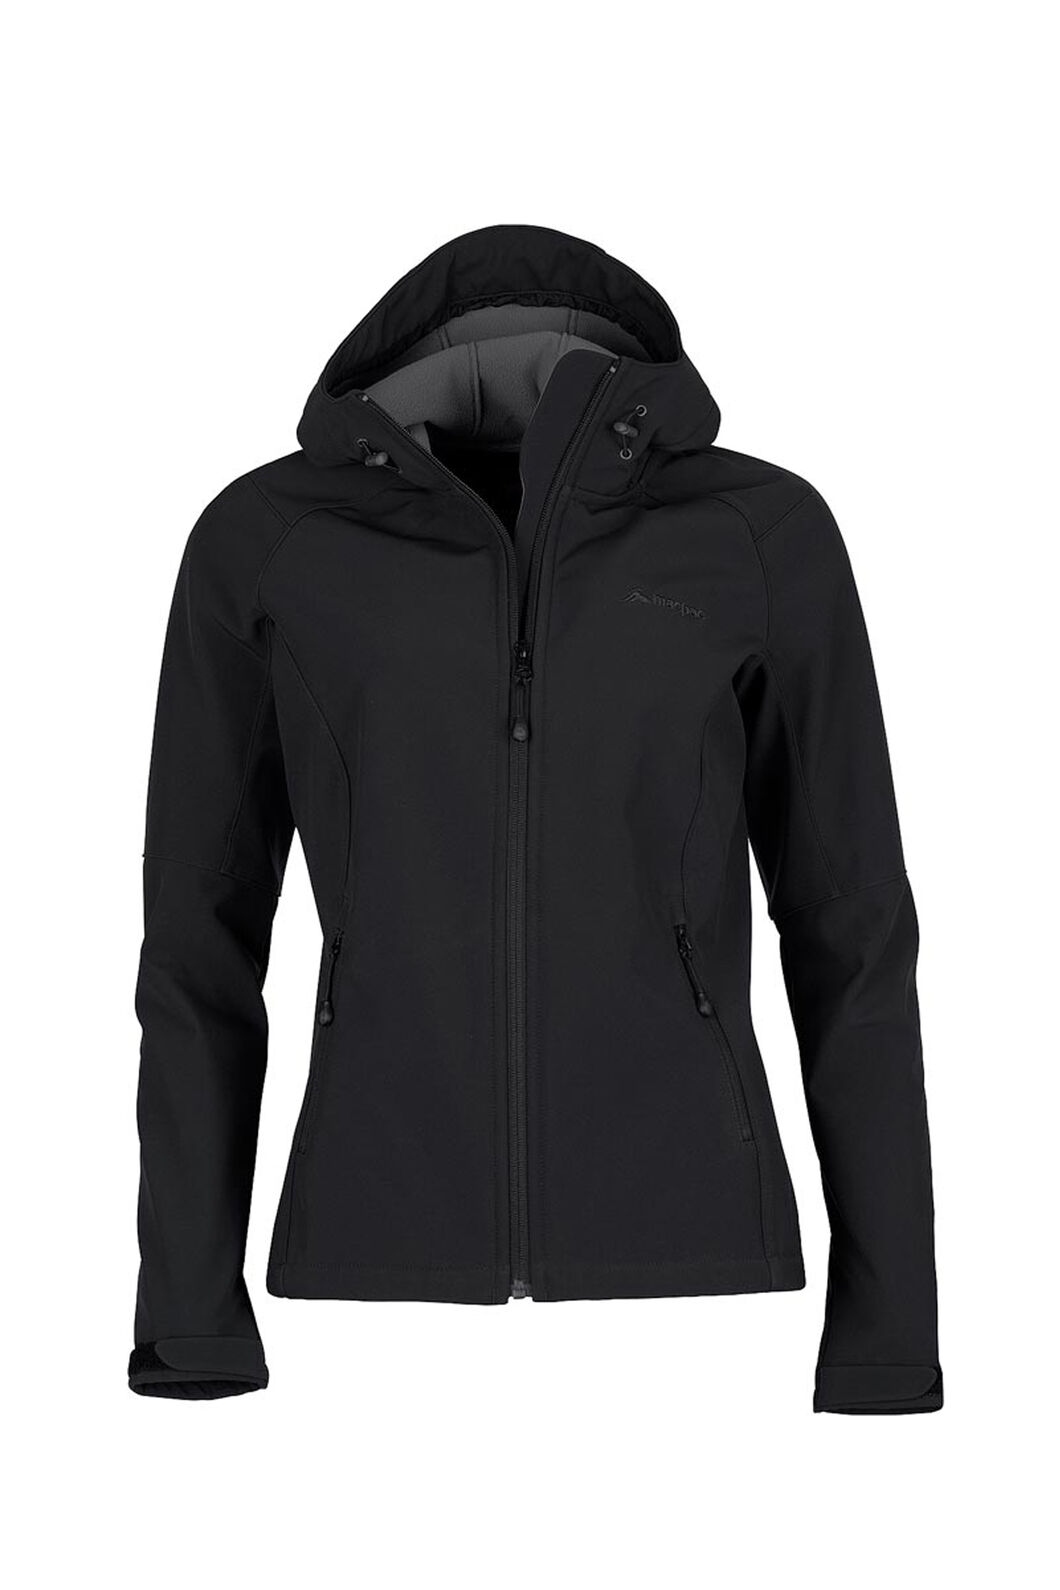 Macpac Sabre Hooded Softshell Jacket - Women's, Black, hi-res